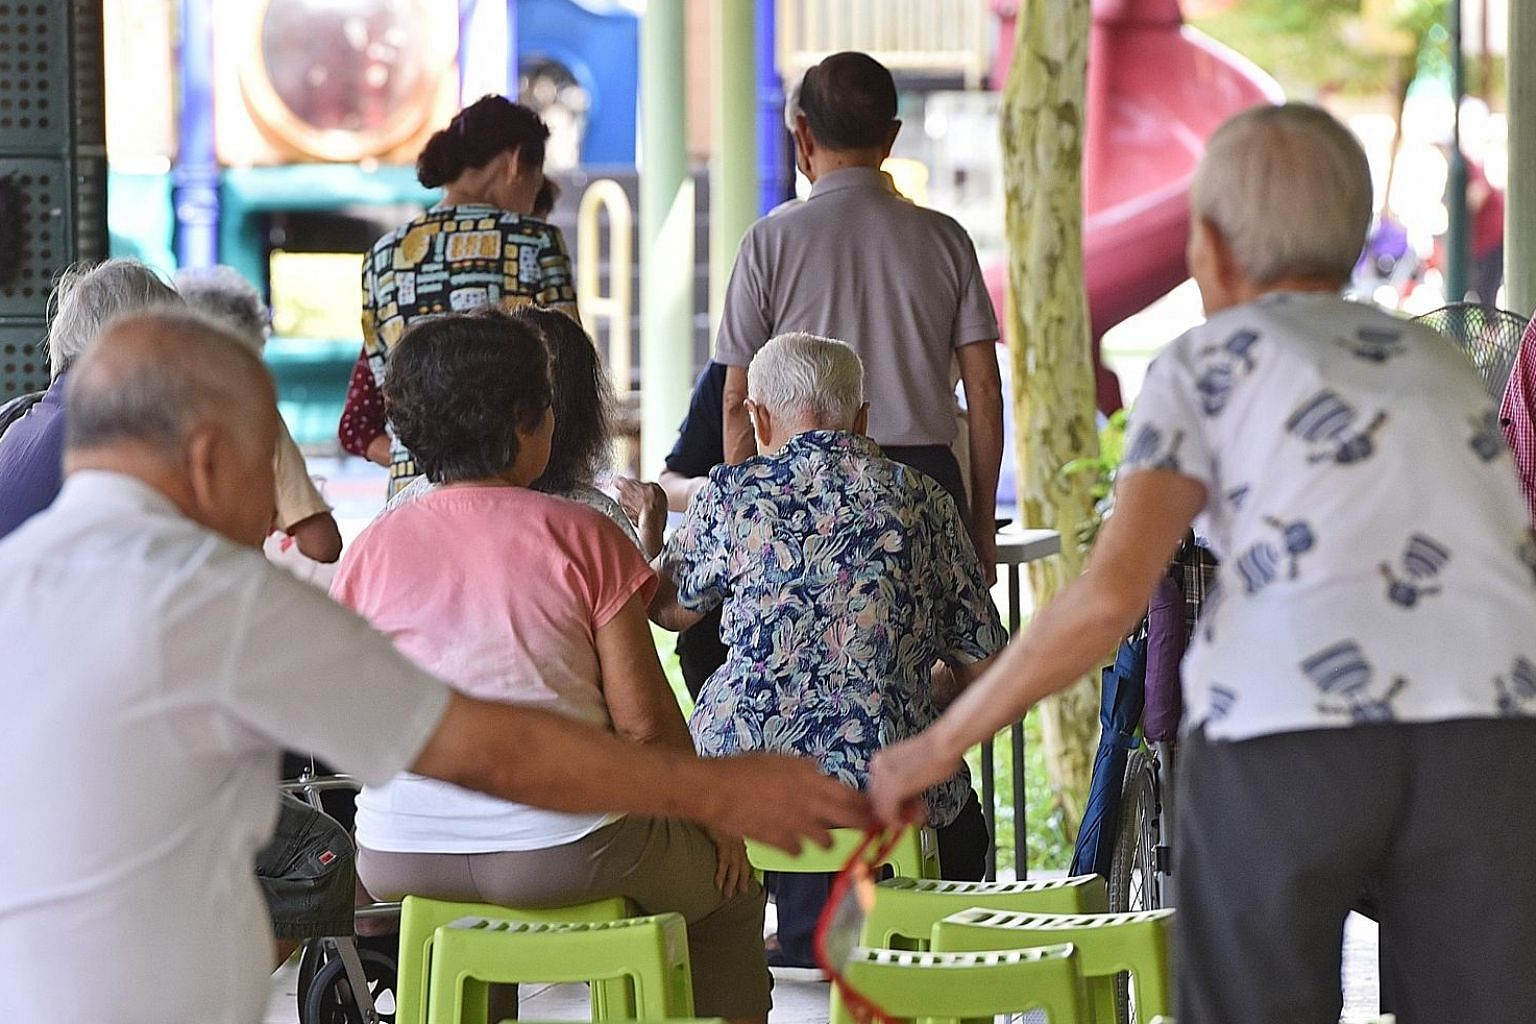 With longer life expectancy and smaller families, elders need stronger support, not only from the state but also from the rest of us in society, says the writer. For instance, the community and the non-profit sector must look beyond the traditional p